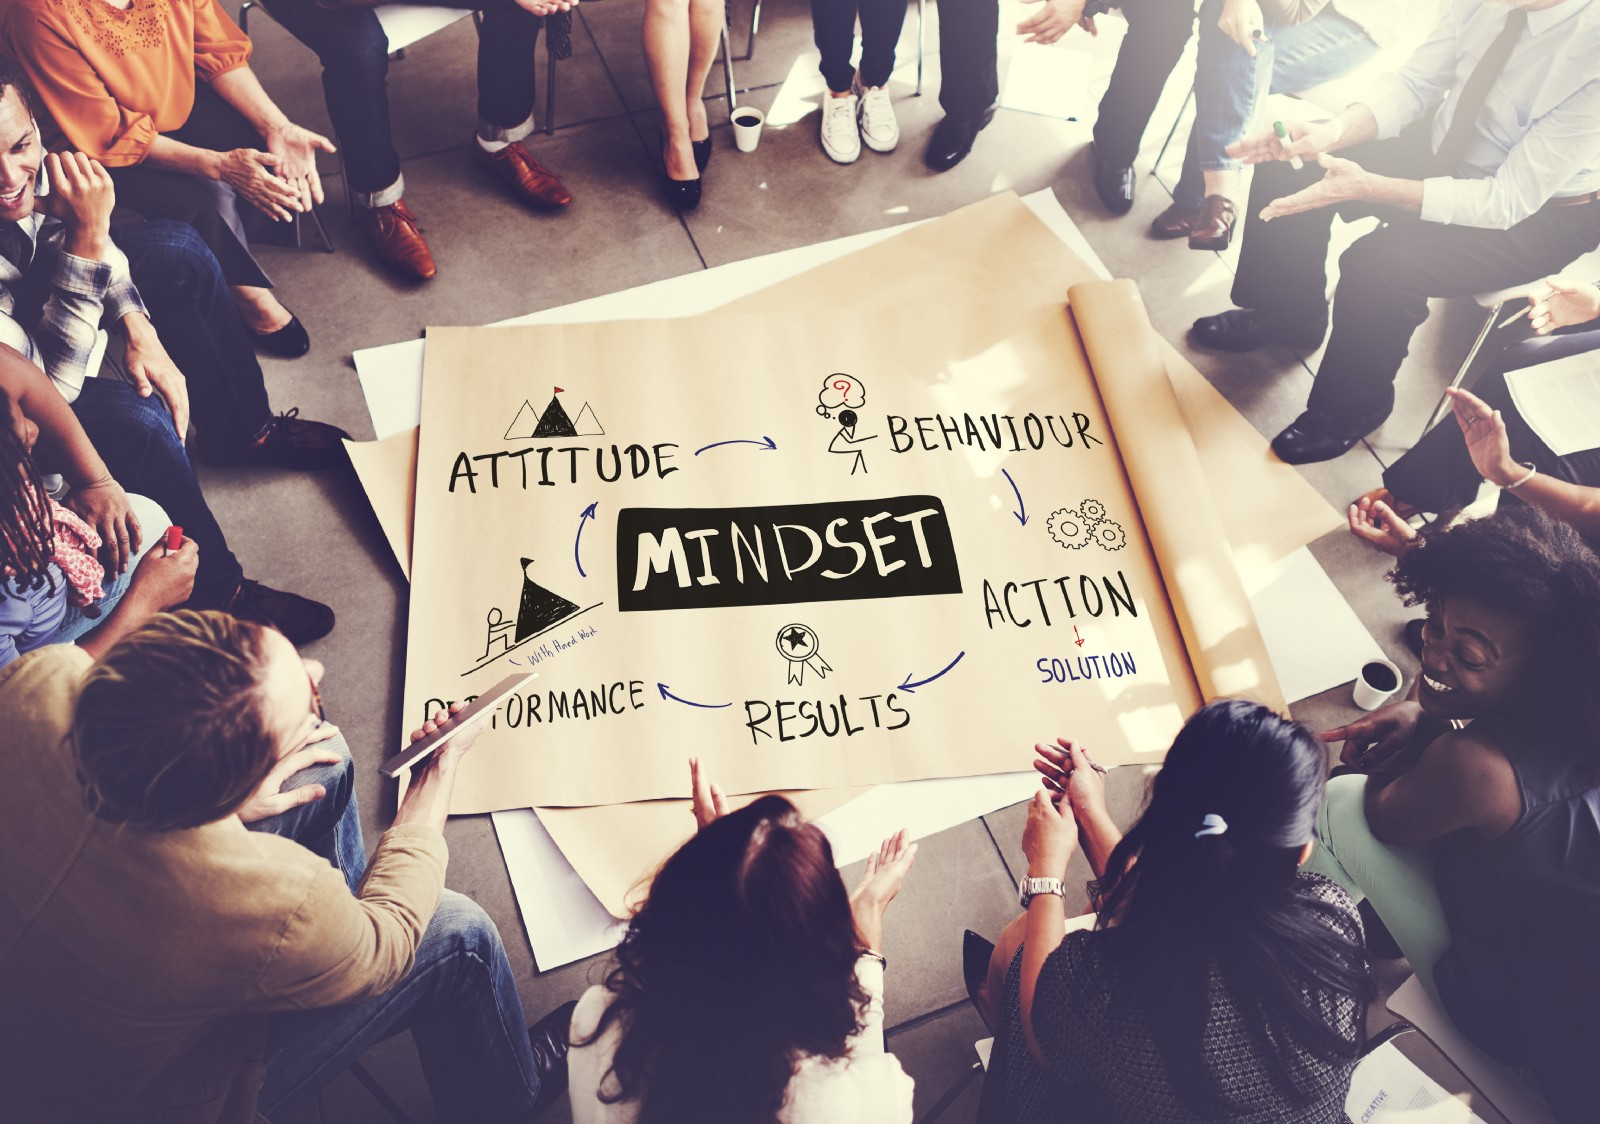 """People sitting in a circle with a poster on the floor. """"Mindset"""" is in the center of the poster with the words Attitude, Behavior, Action, Solution, Results and Performance"""